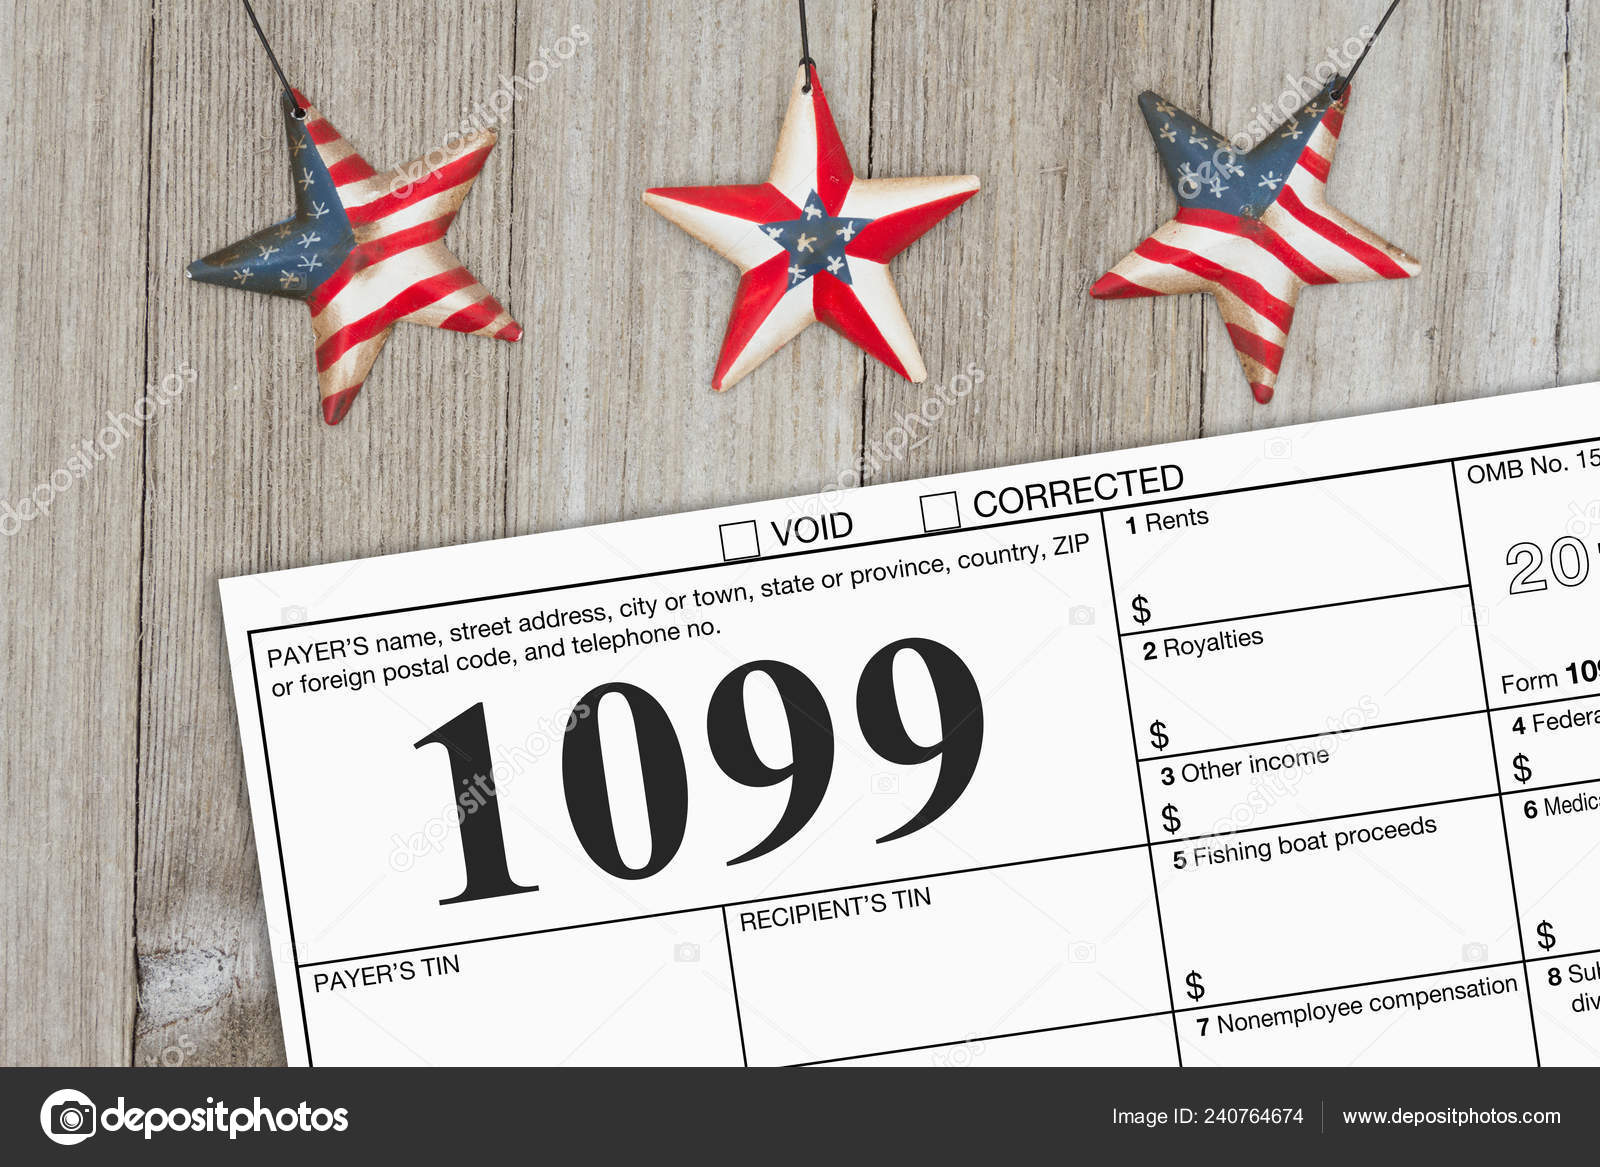 A Us Federal Tax 1099 Income Tax Form On Weathered Wood With Usa Stars